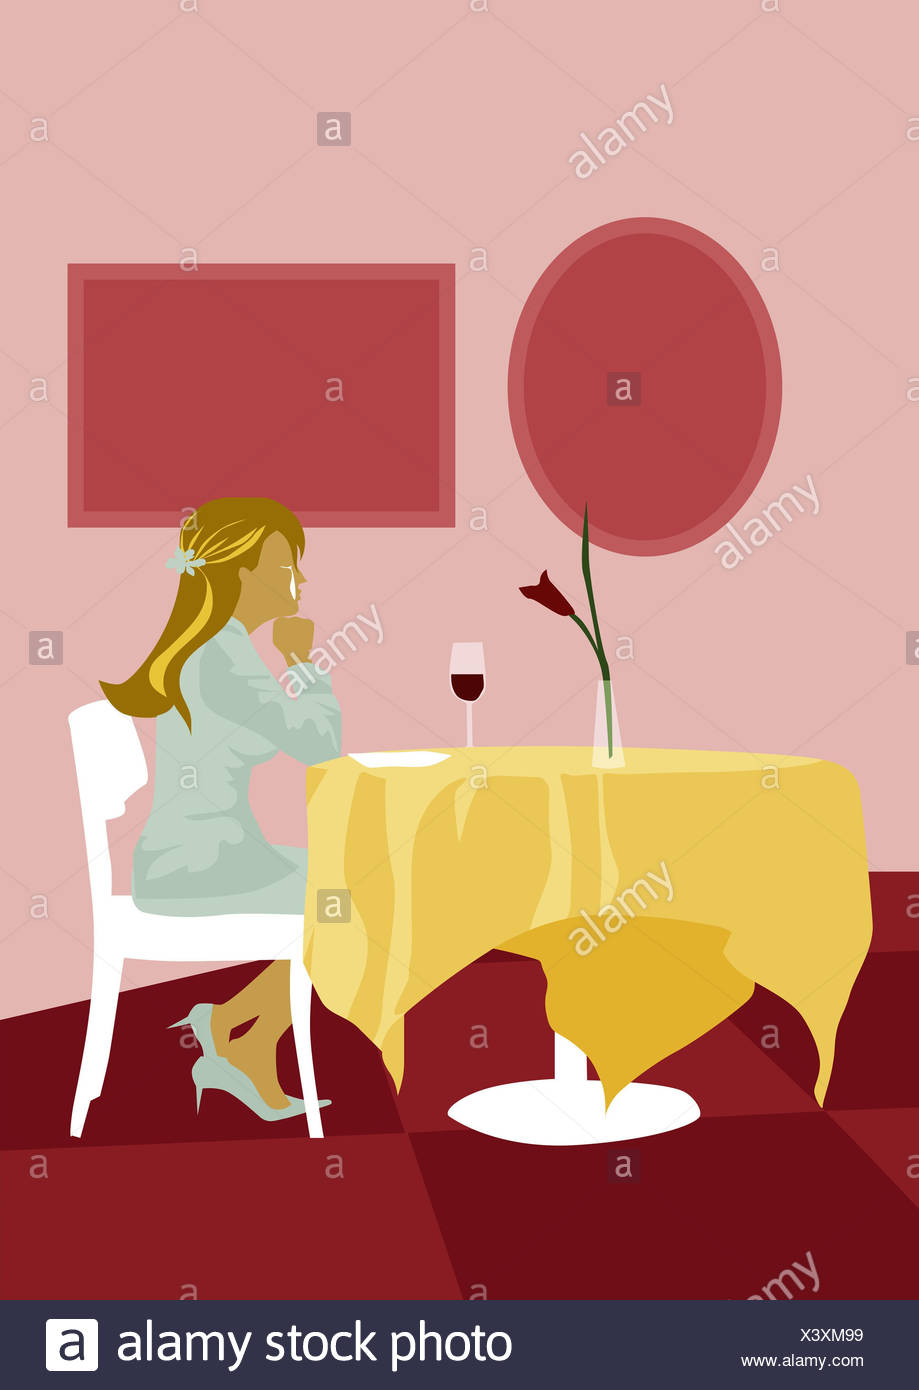 Illustration woman young cries table sitting alone lateral blond long-haired pub restaurant indoors secluded separated howlings - Stock Image